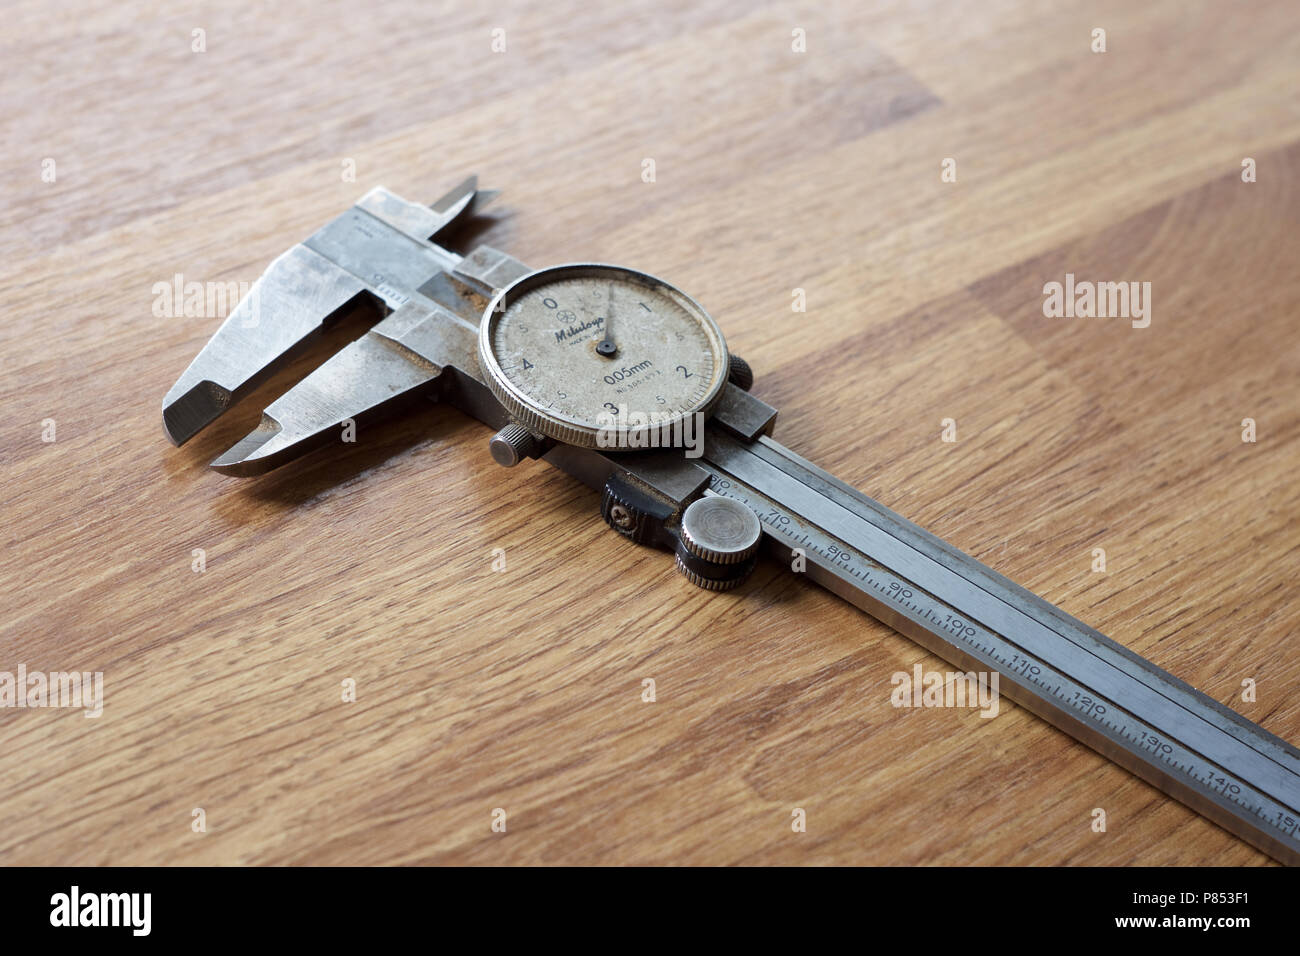 Metric analogue vernier gauge on the work bench. - Stock Image